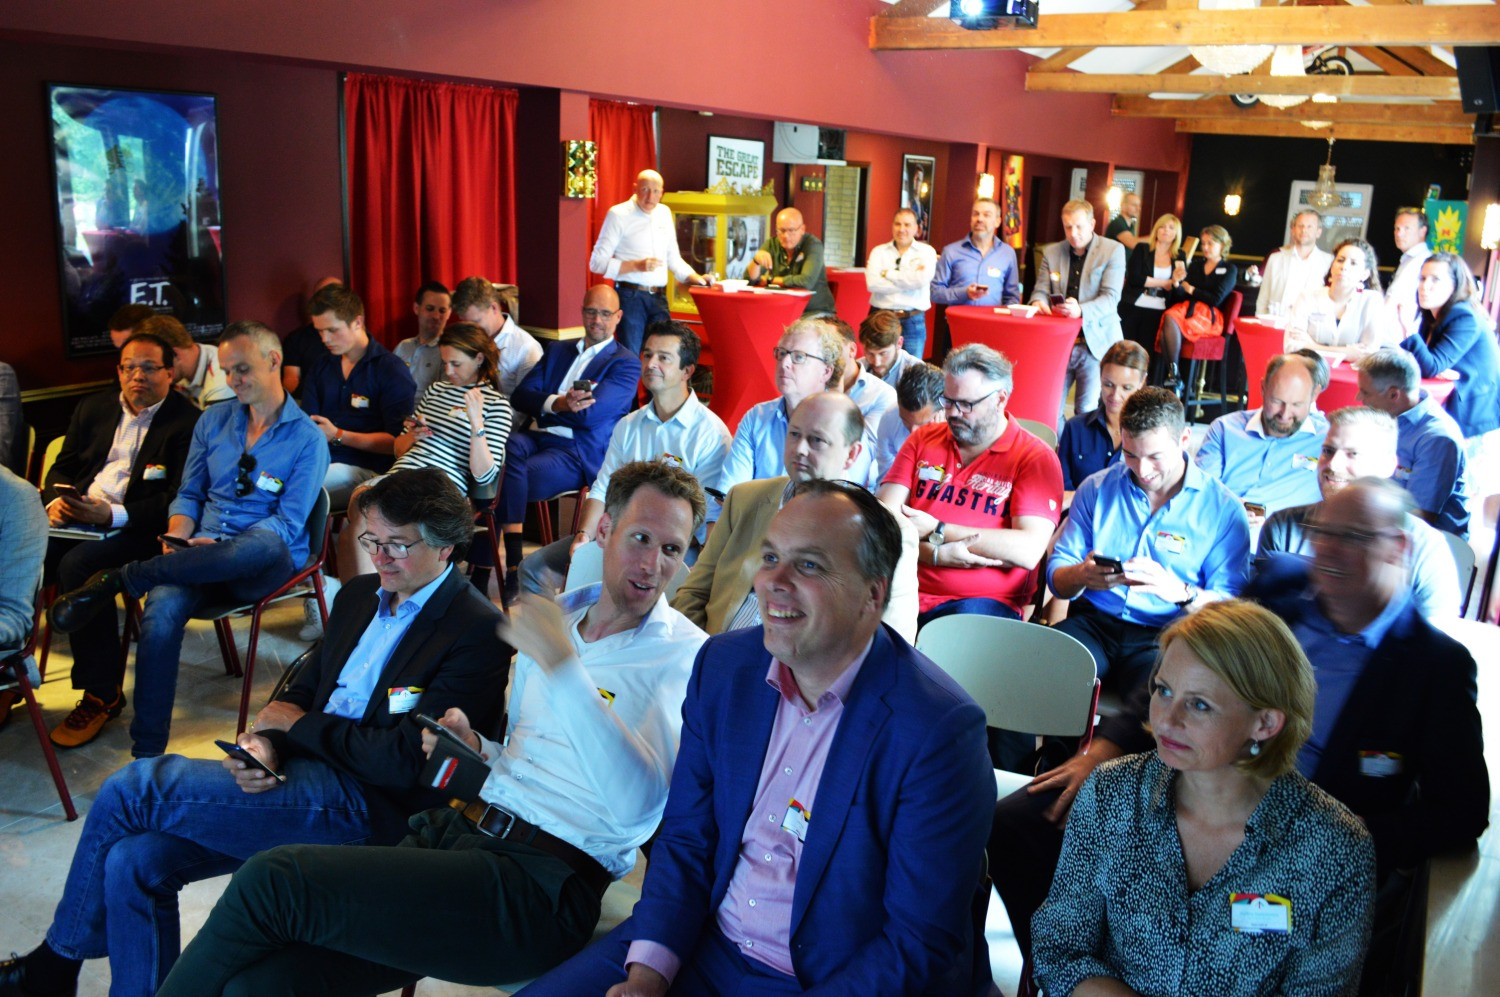 INCO Business Group Breda Startup Event.